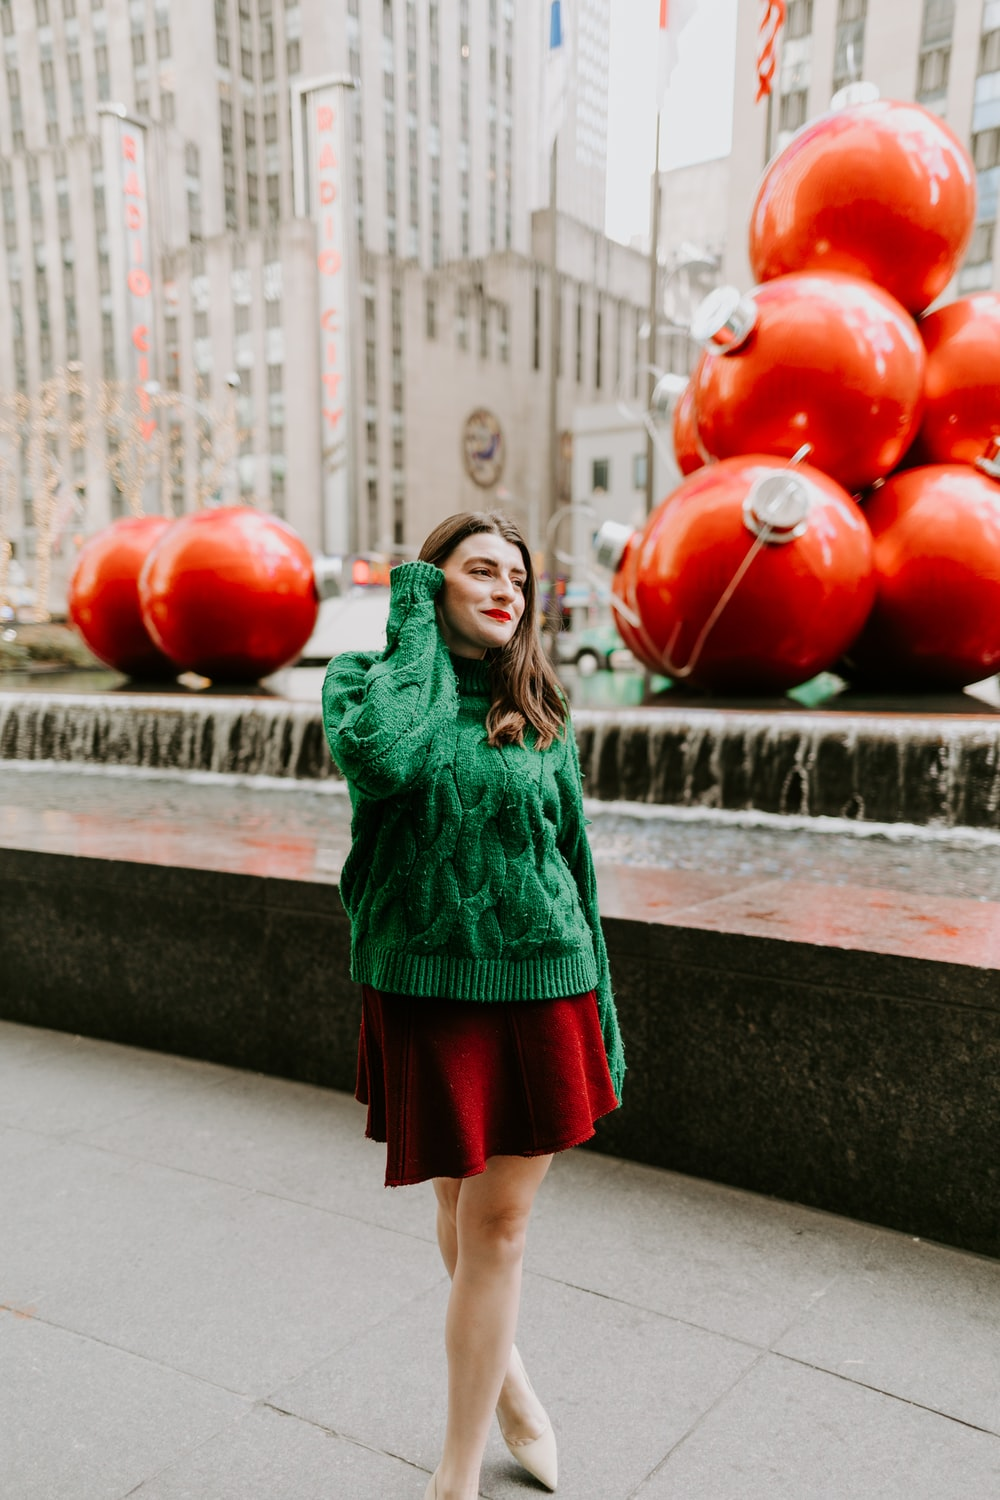 woman in green long sleeve dress holding red balloons